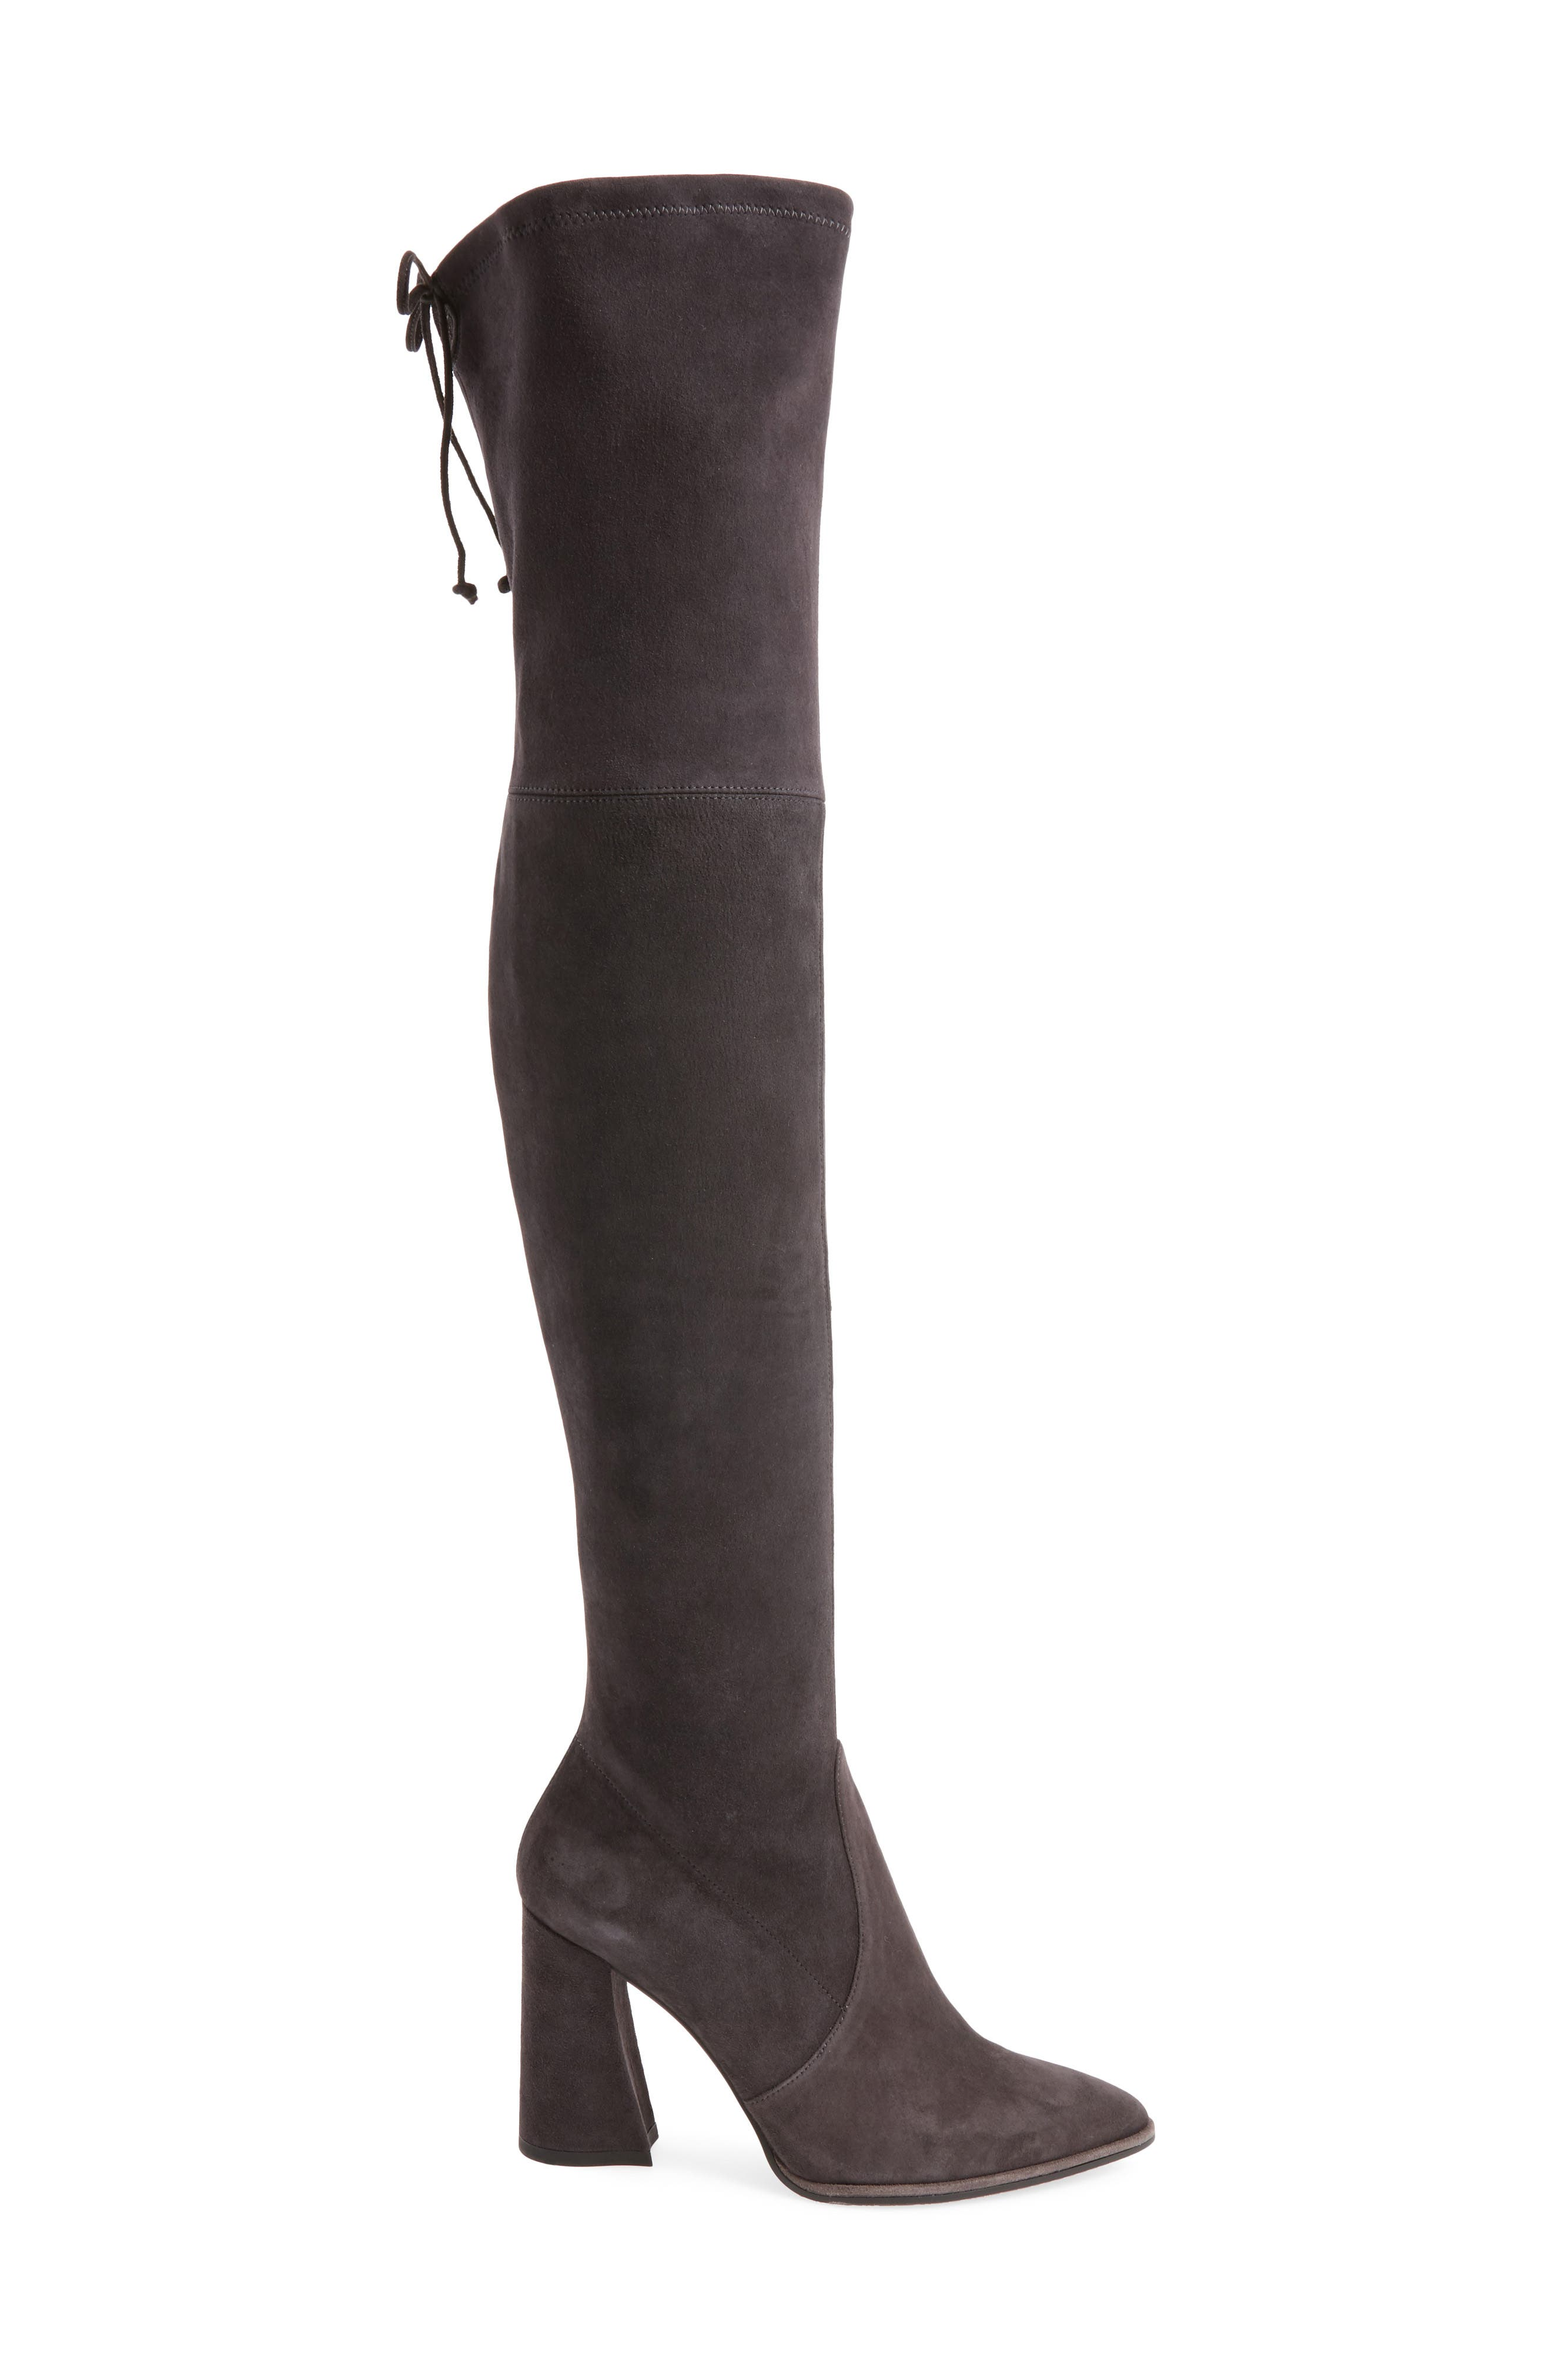 Funland Over the Knee Boot,                             Alternate thumbnail 3, color,